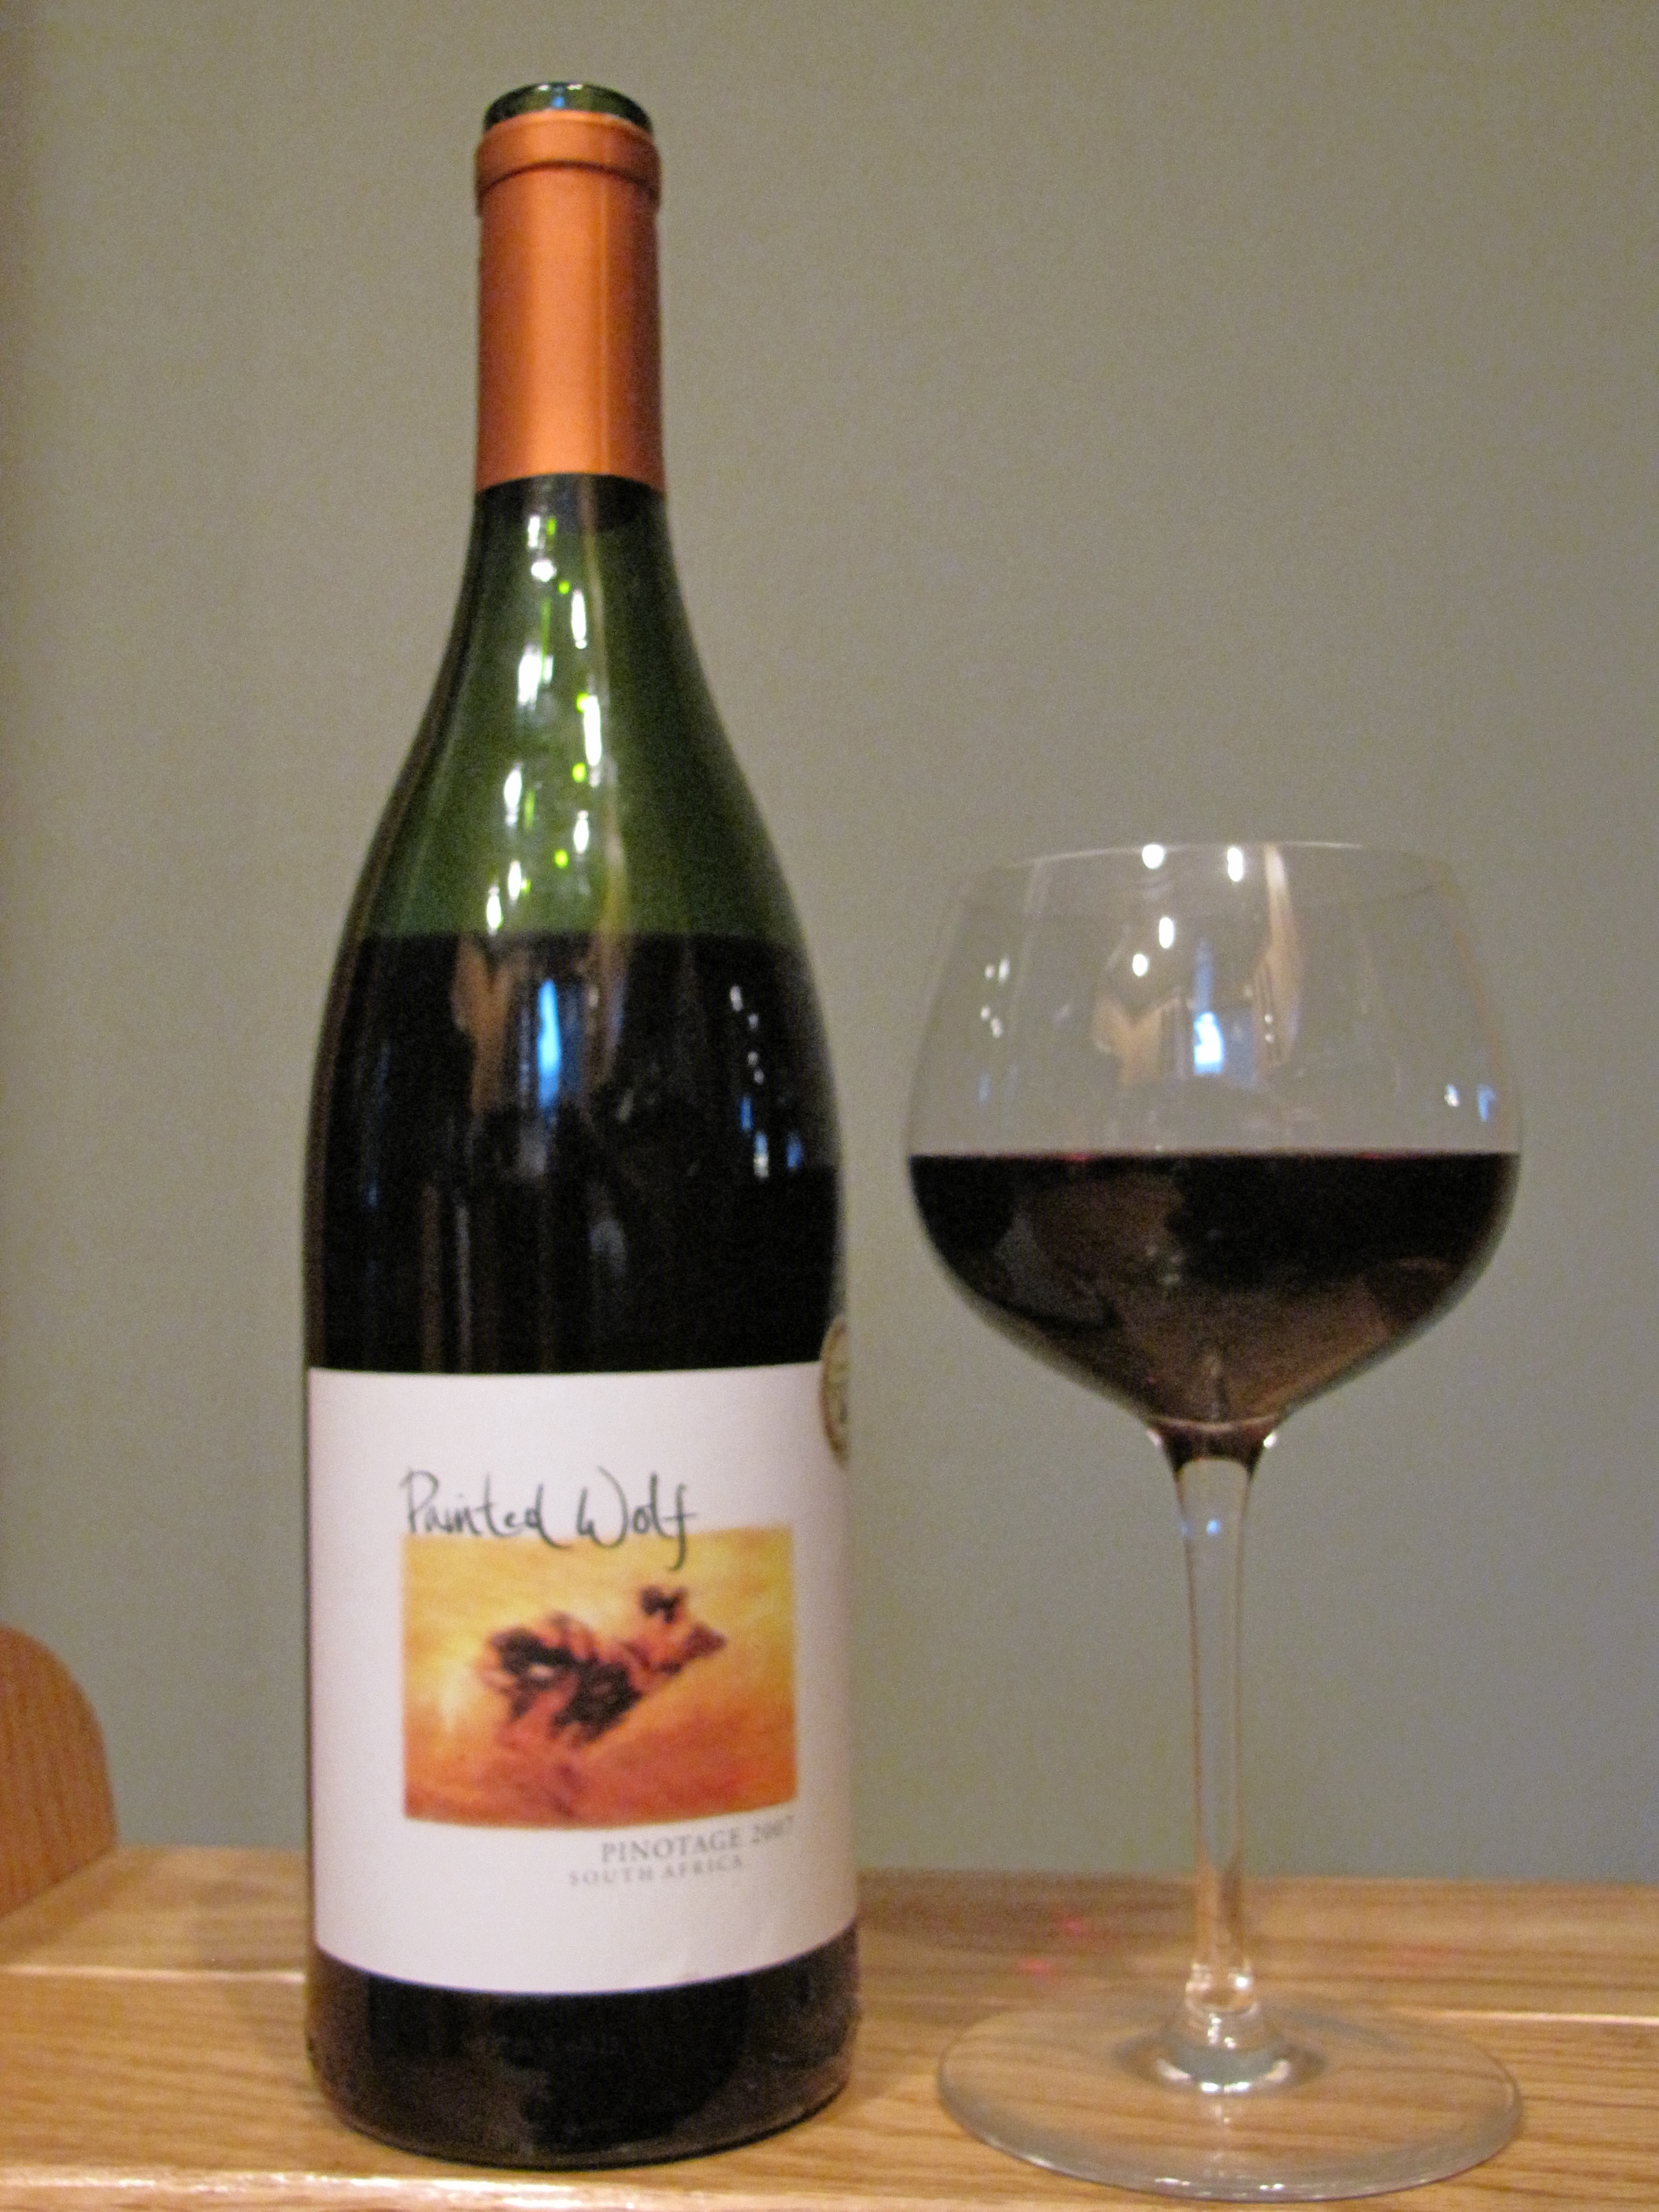 Painted Wolf Wines Pinotage (2007)